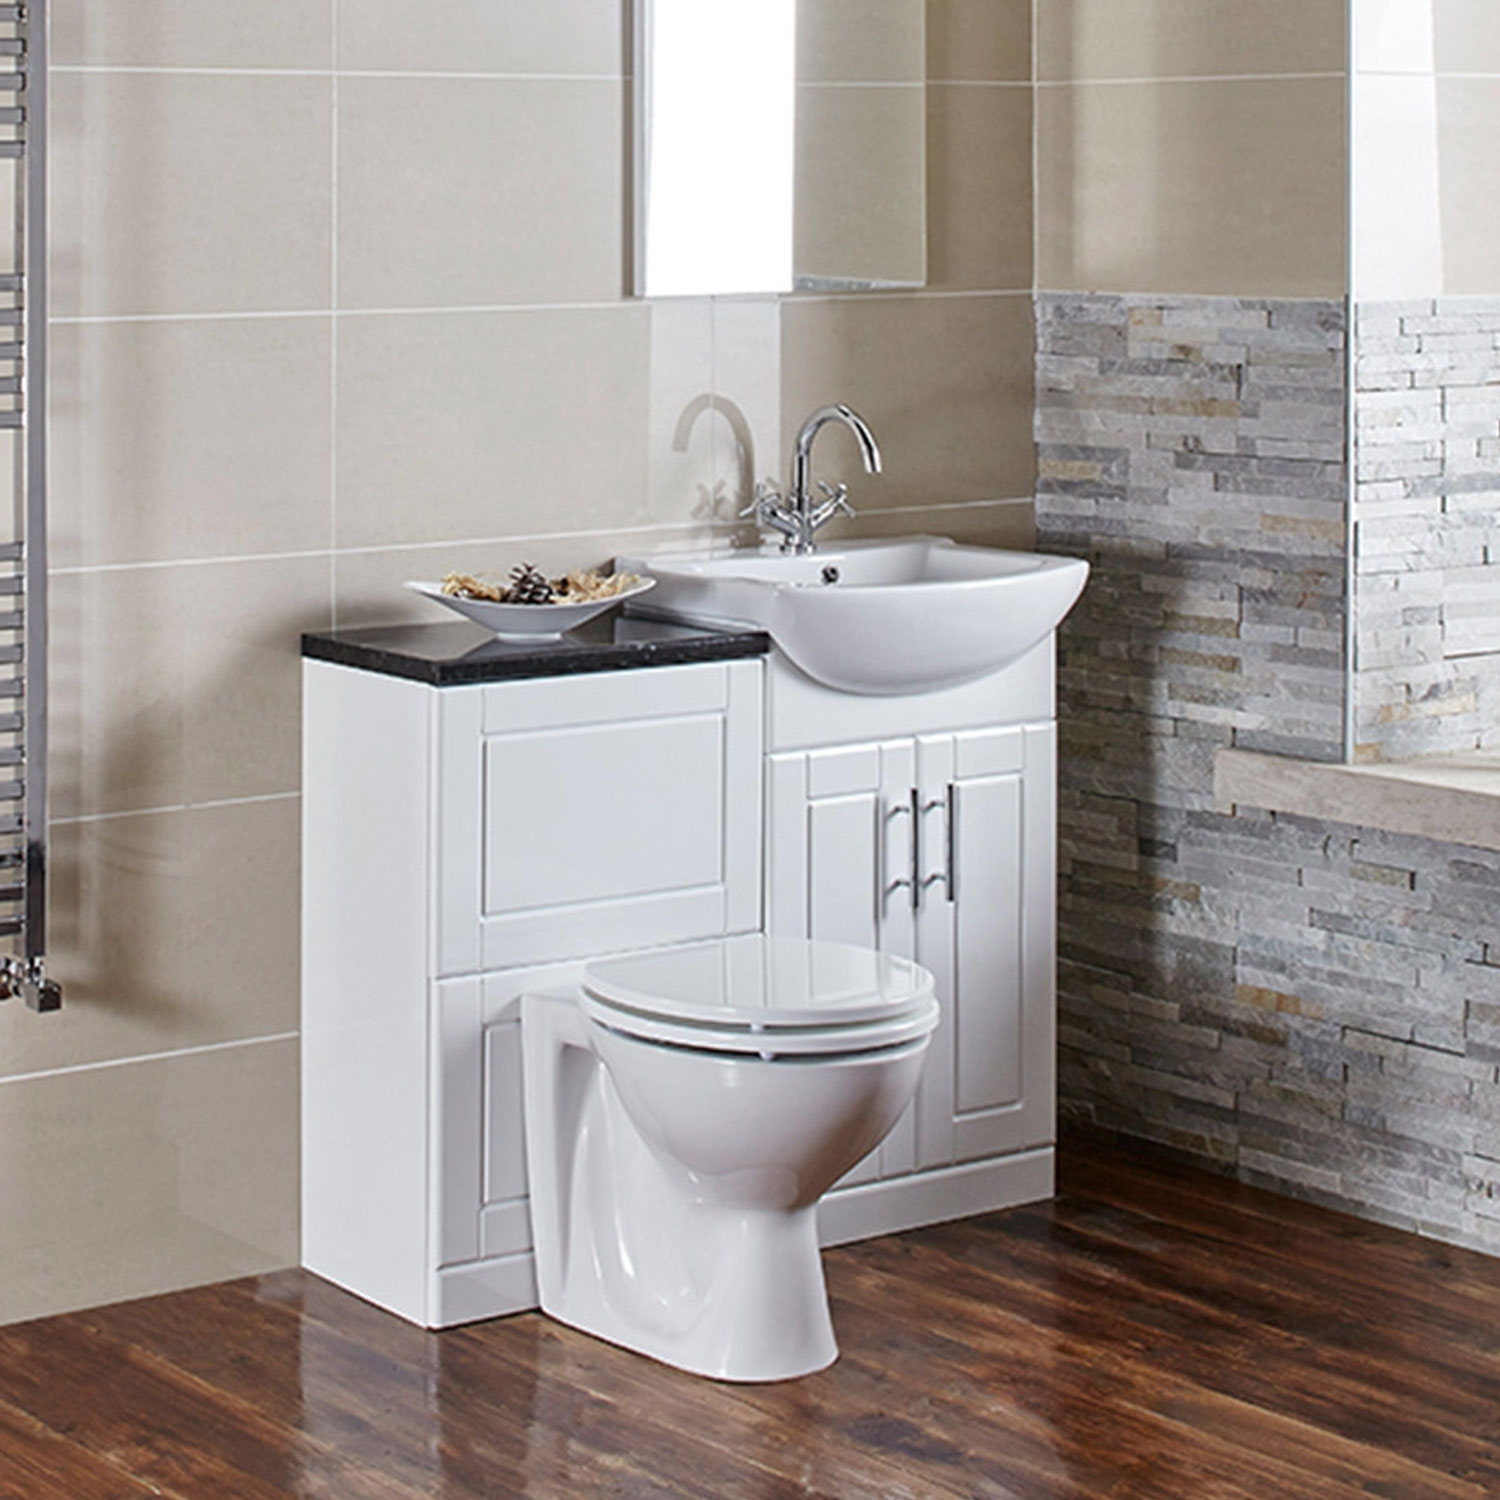 Verona Aquachic Vanity Unit with Basin 500mm Wide - High Gloss White